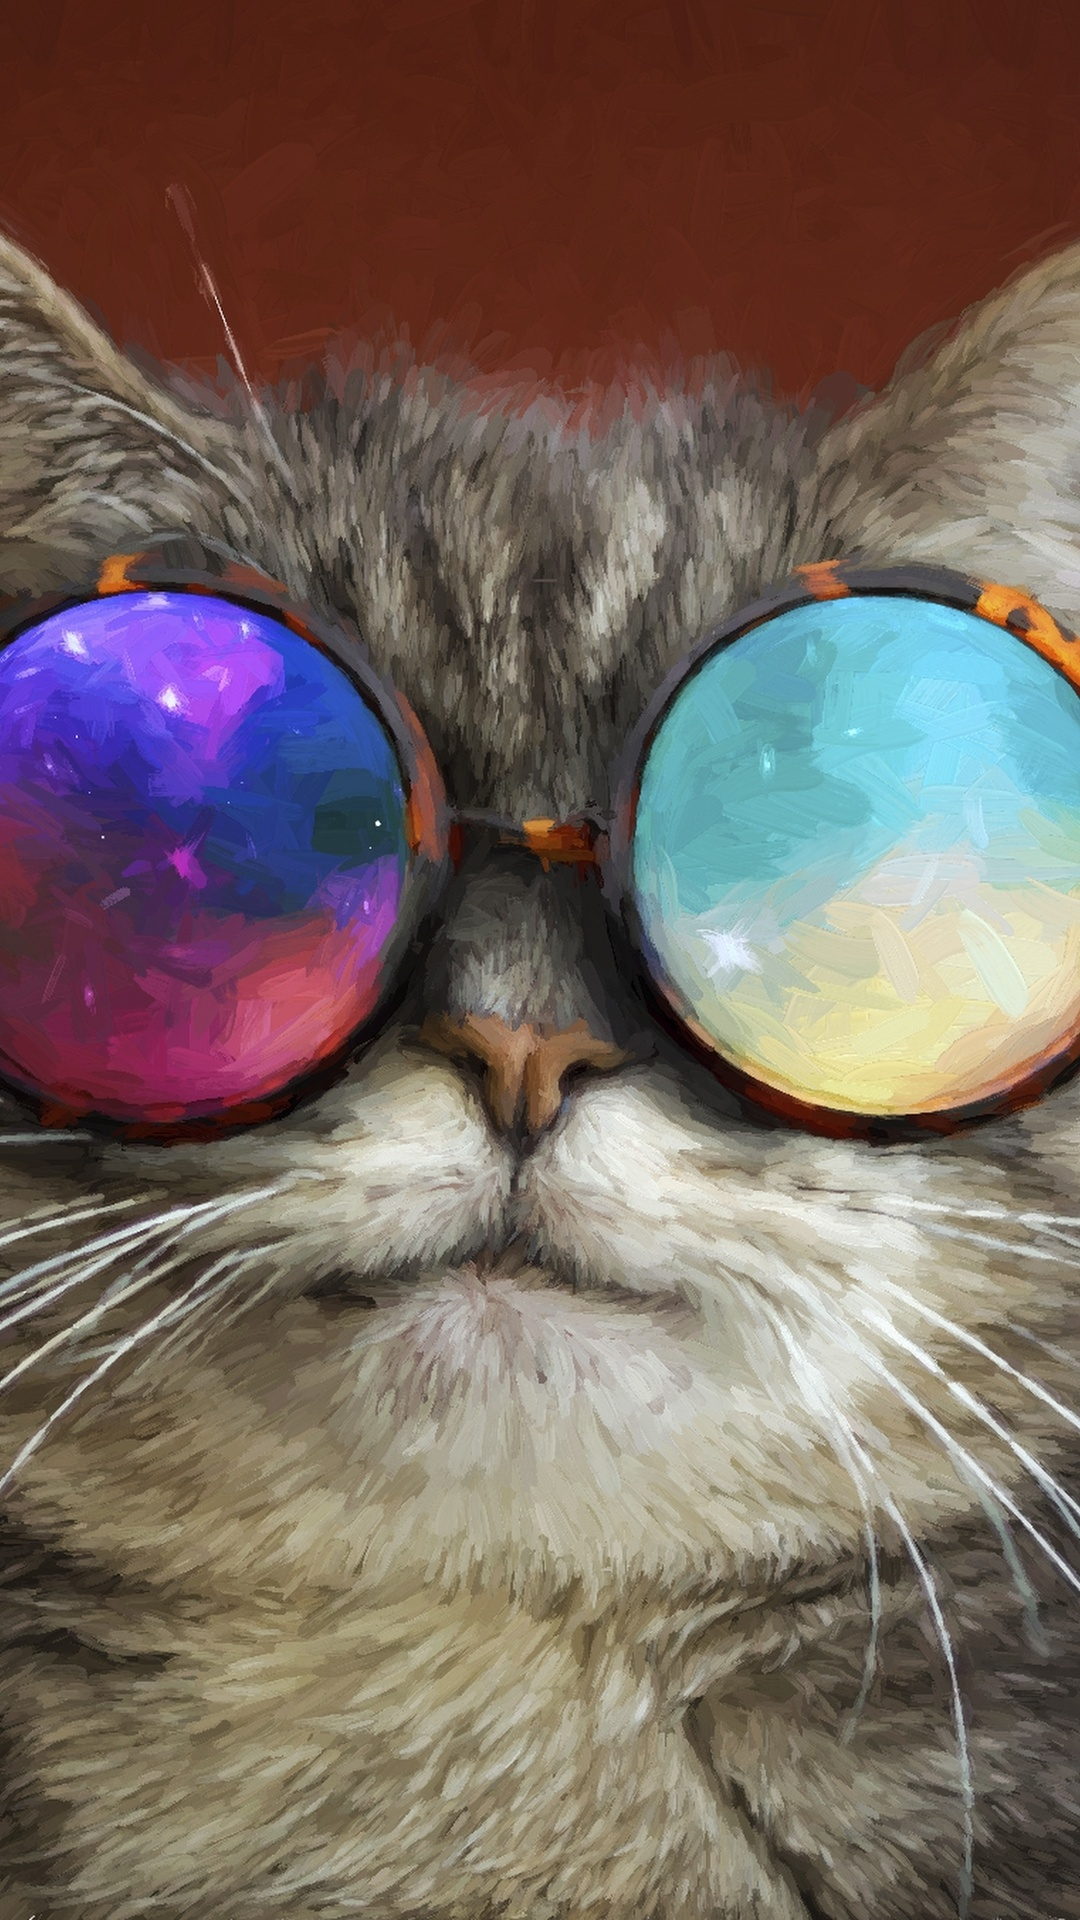 1080x1920 Cat Glasses Party Cool Painting Iphone 7 6s 6 Plus Pixel